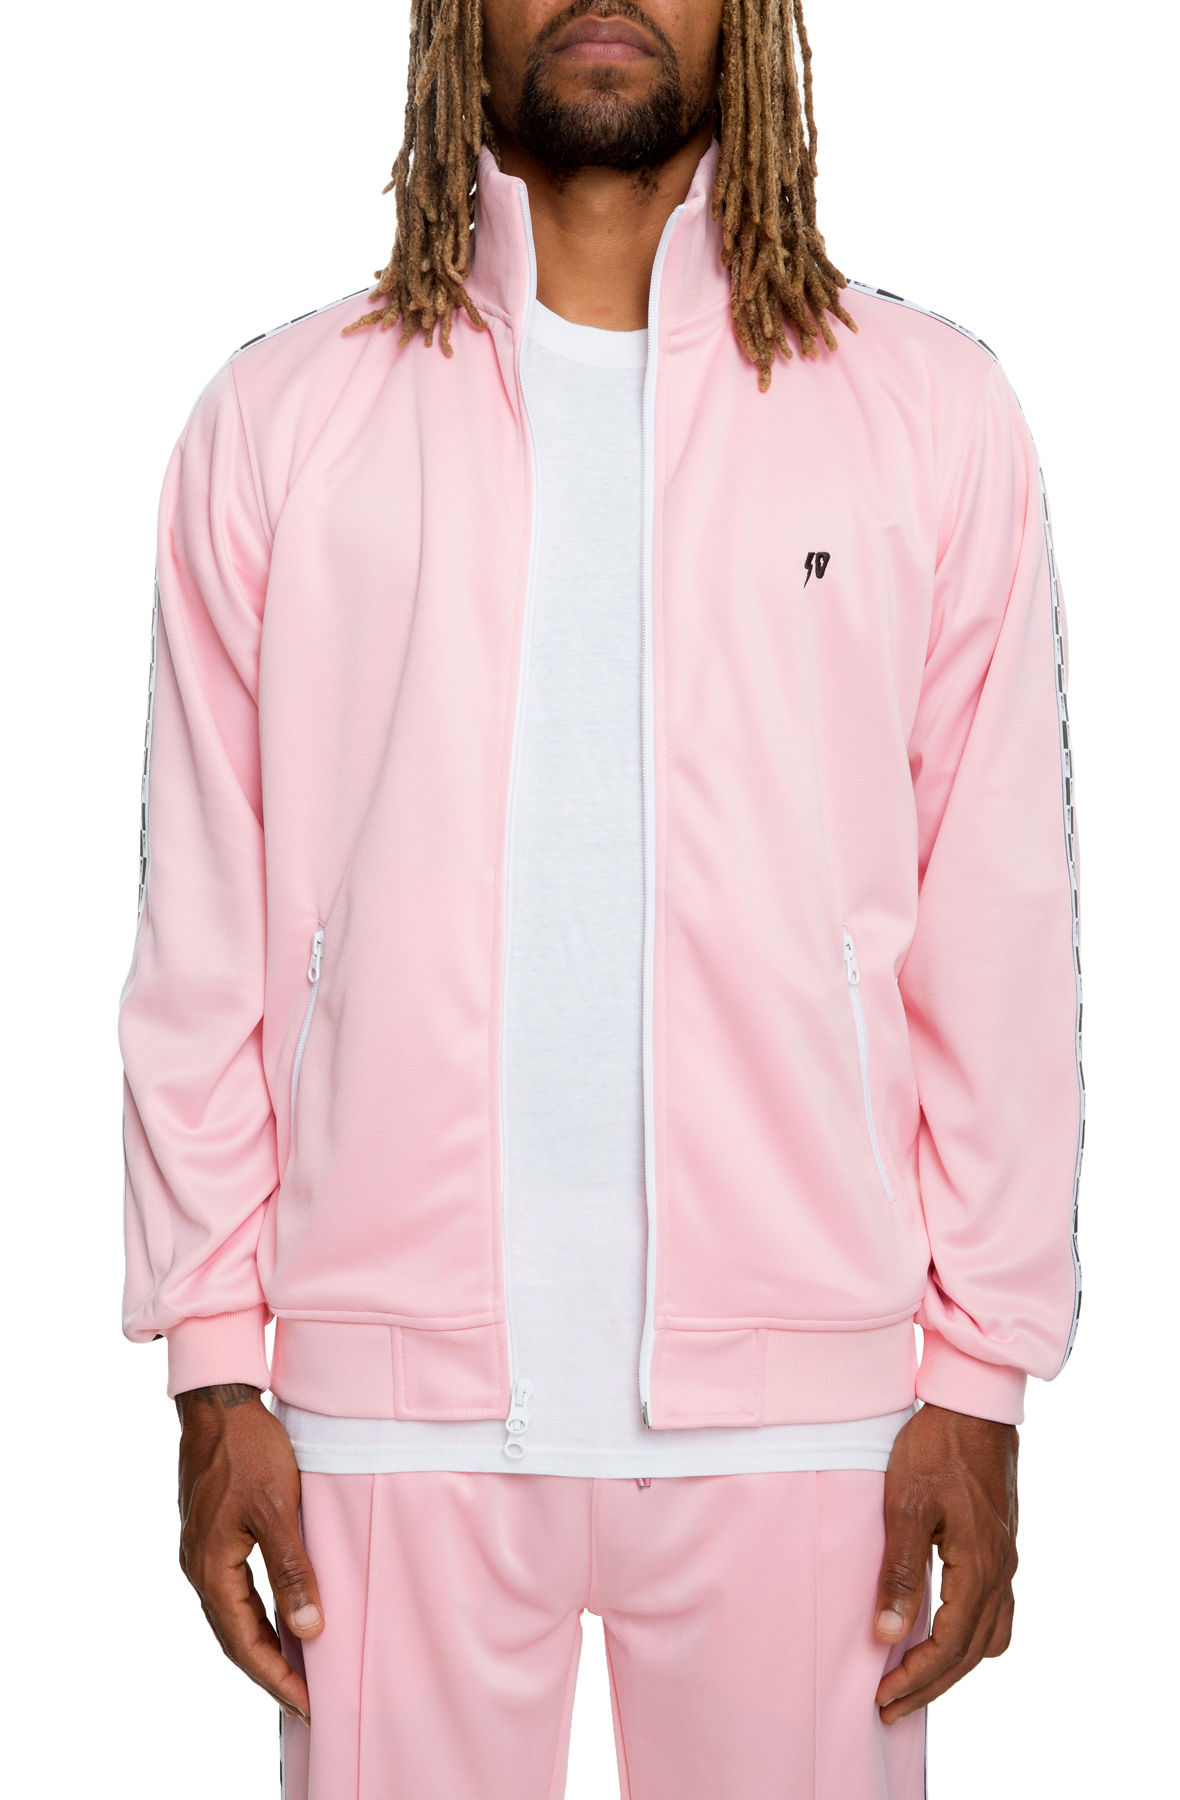 Image of 10 Deep XXX USA Checkered Flag Track Jacket in Pink